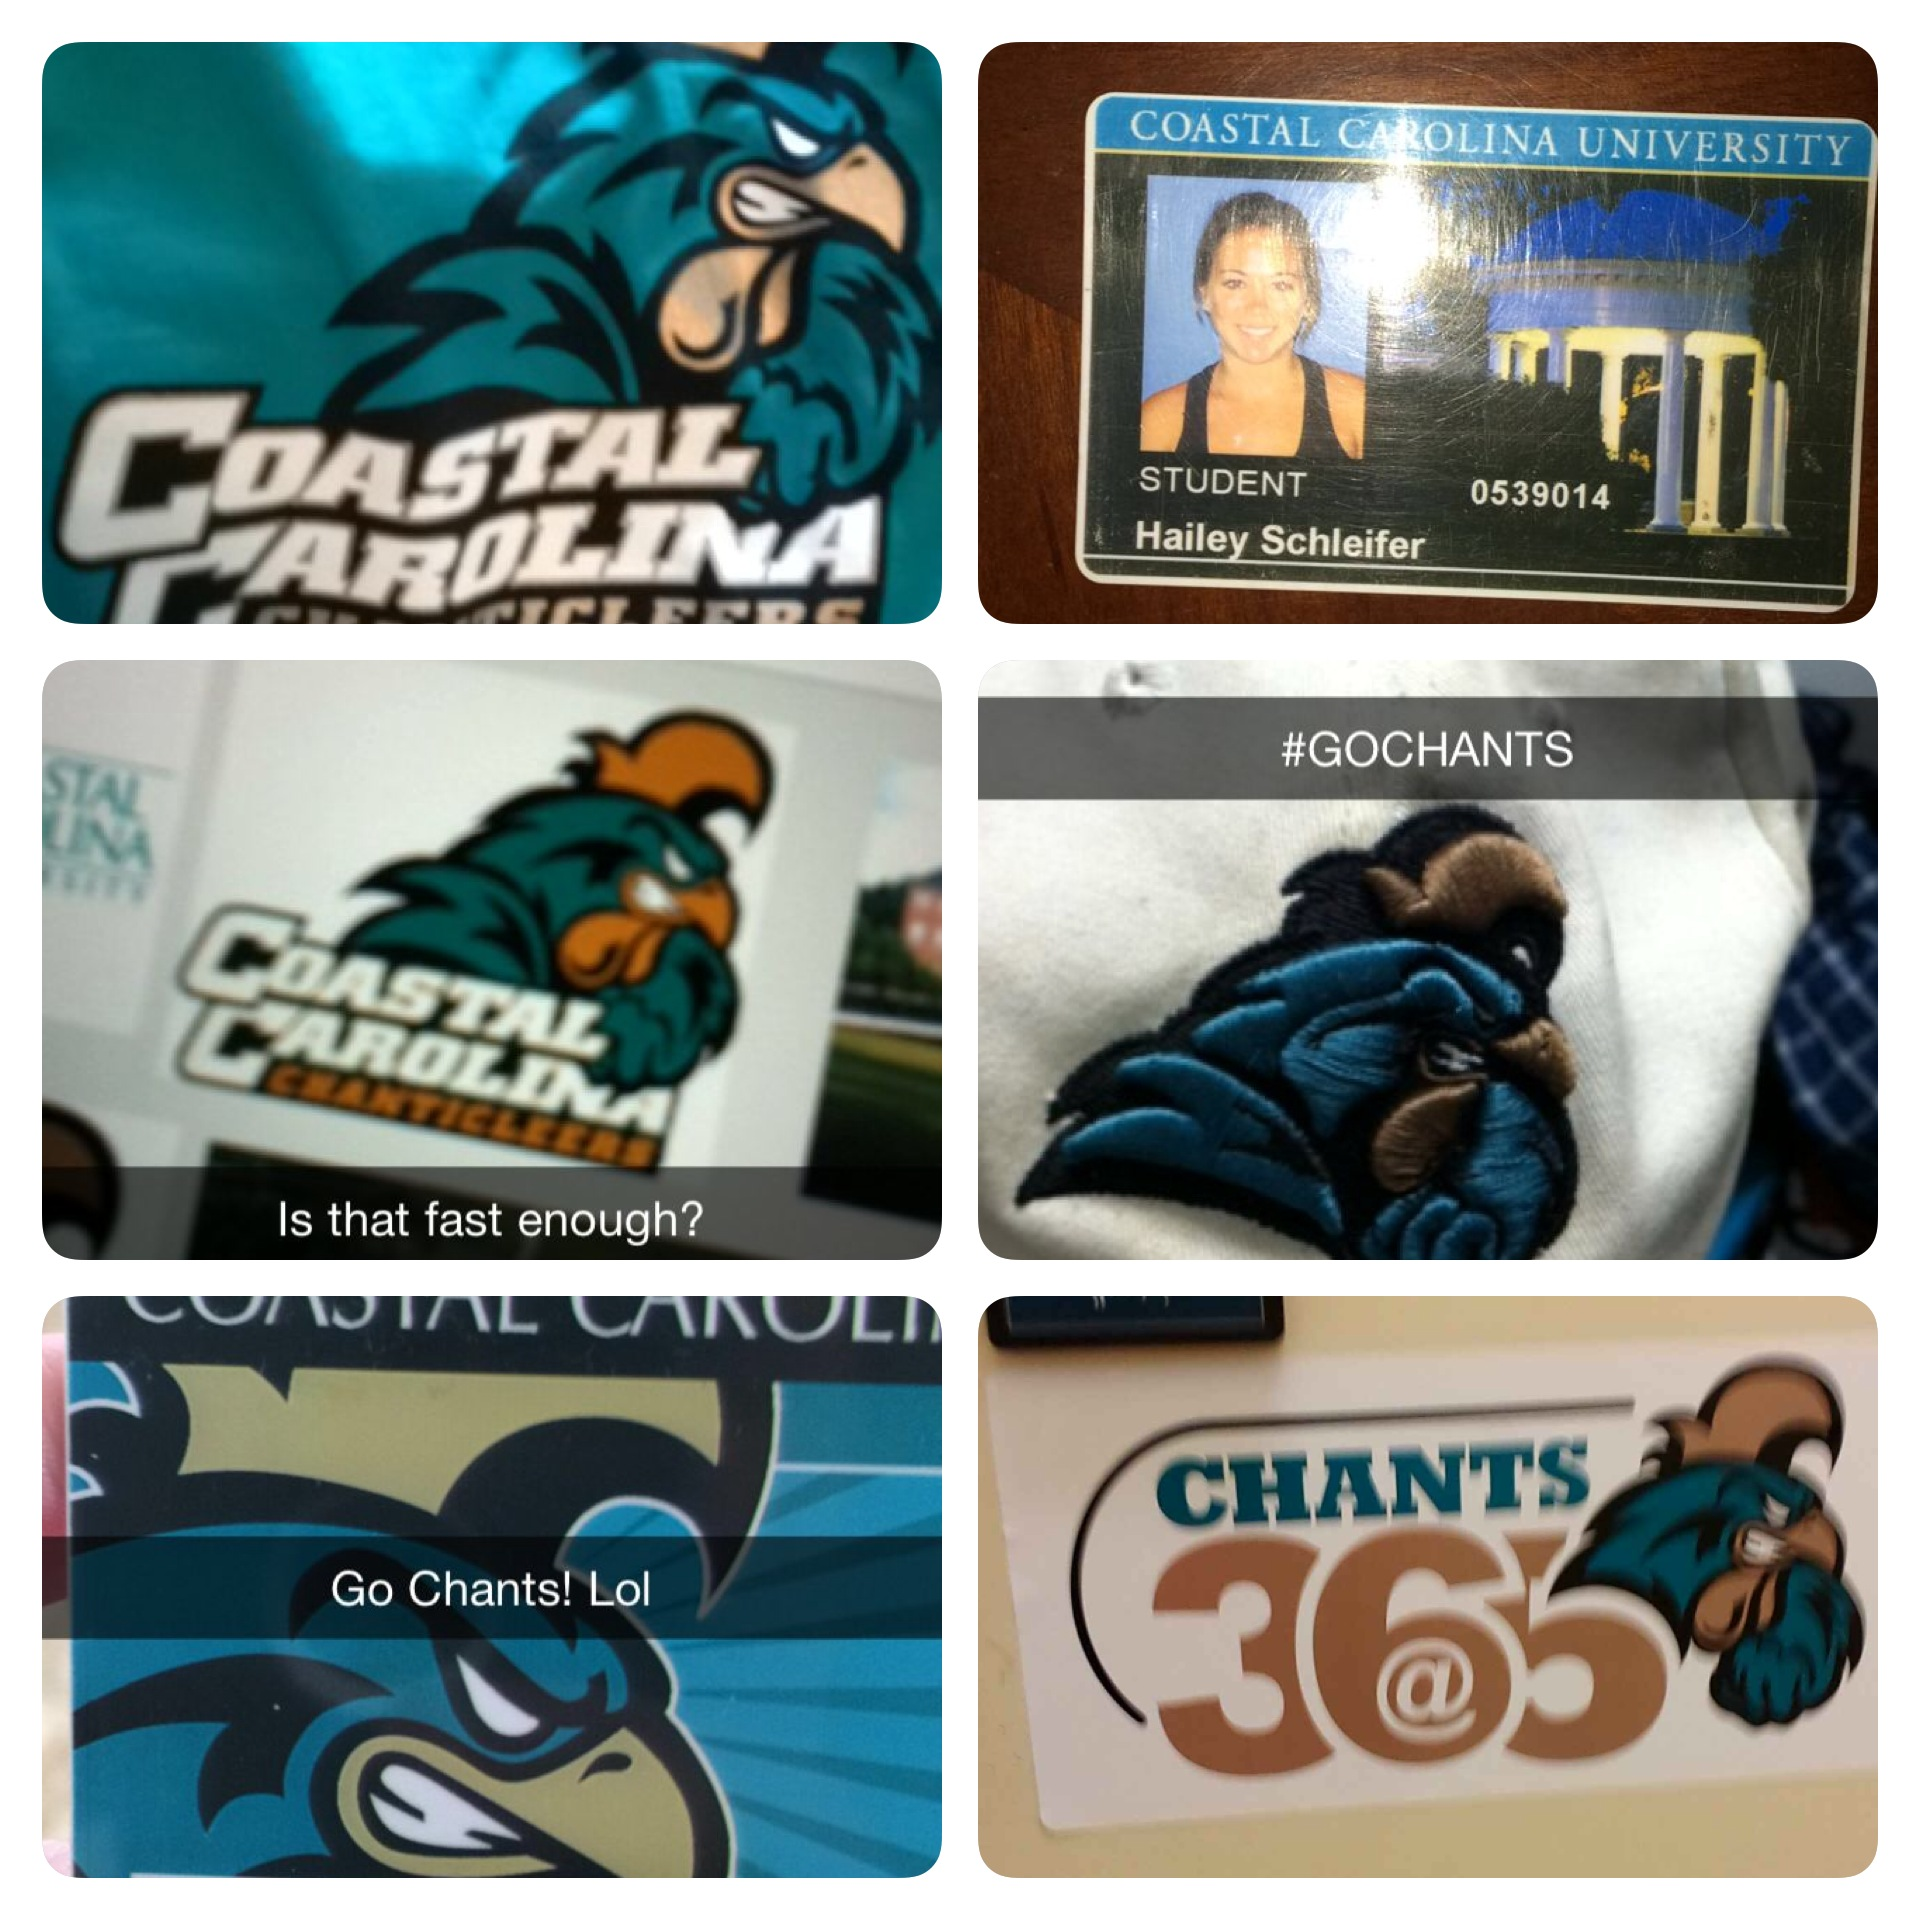 Just a few of the great snaps we got when we asked our friends to send us a CCU logo.